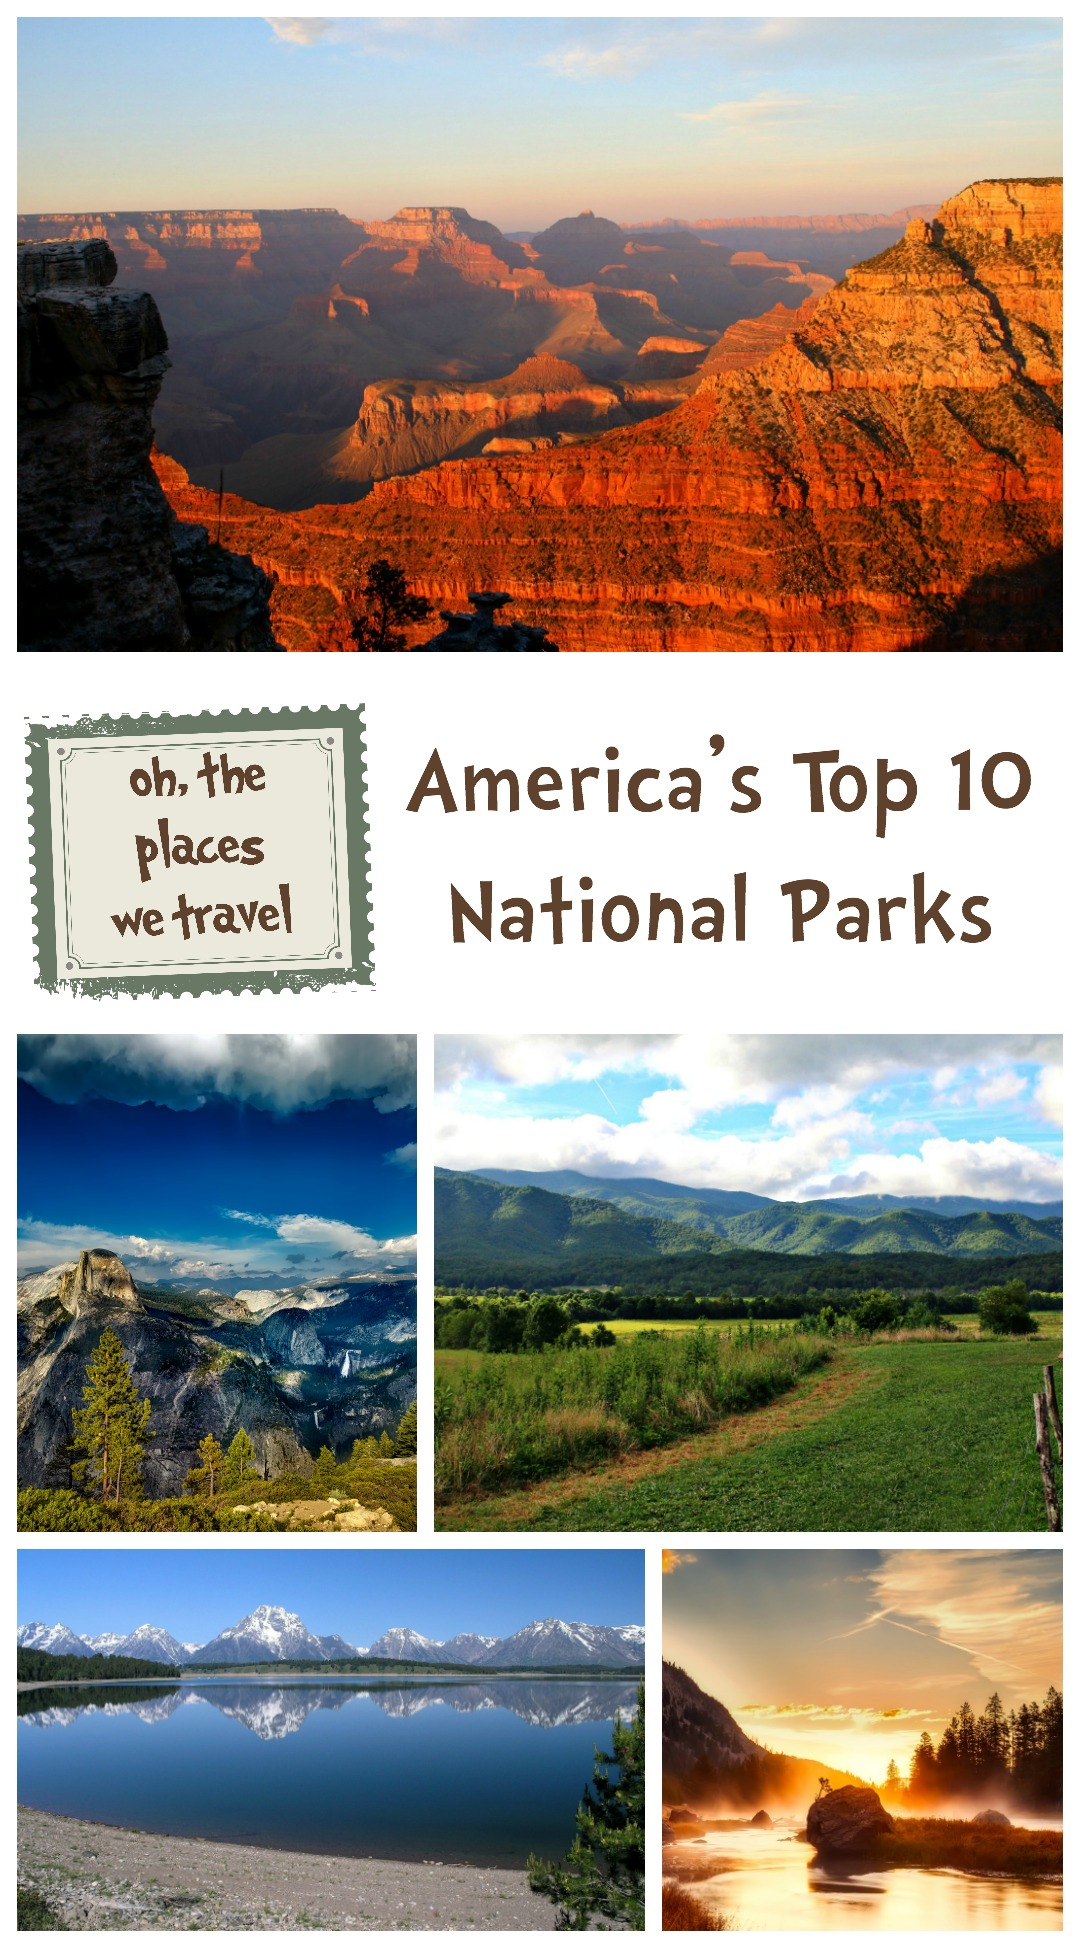 America's Top 10 National Parks